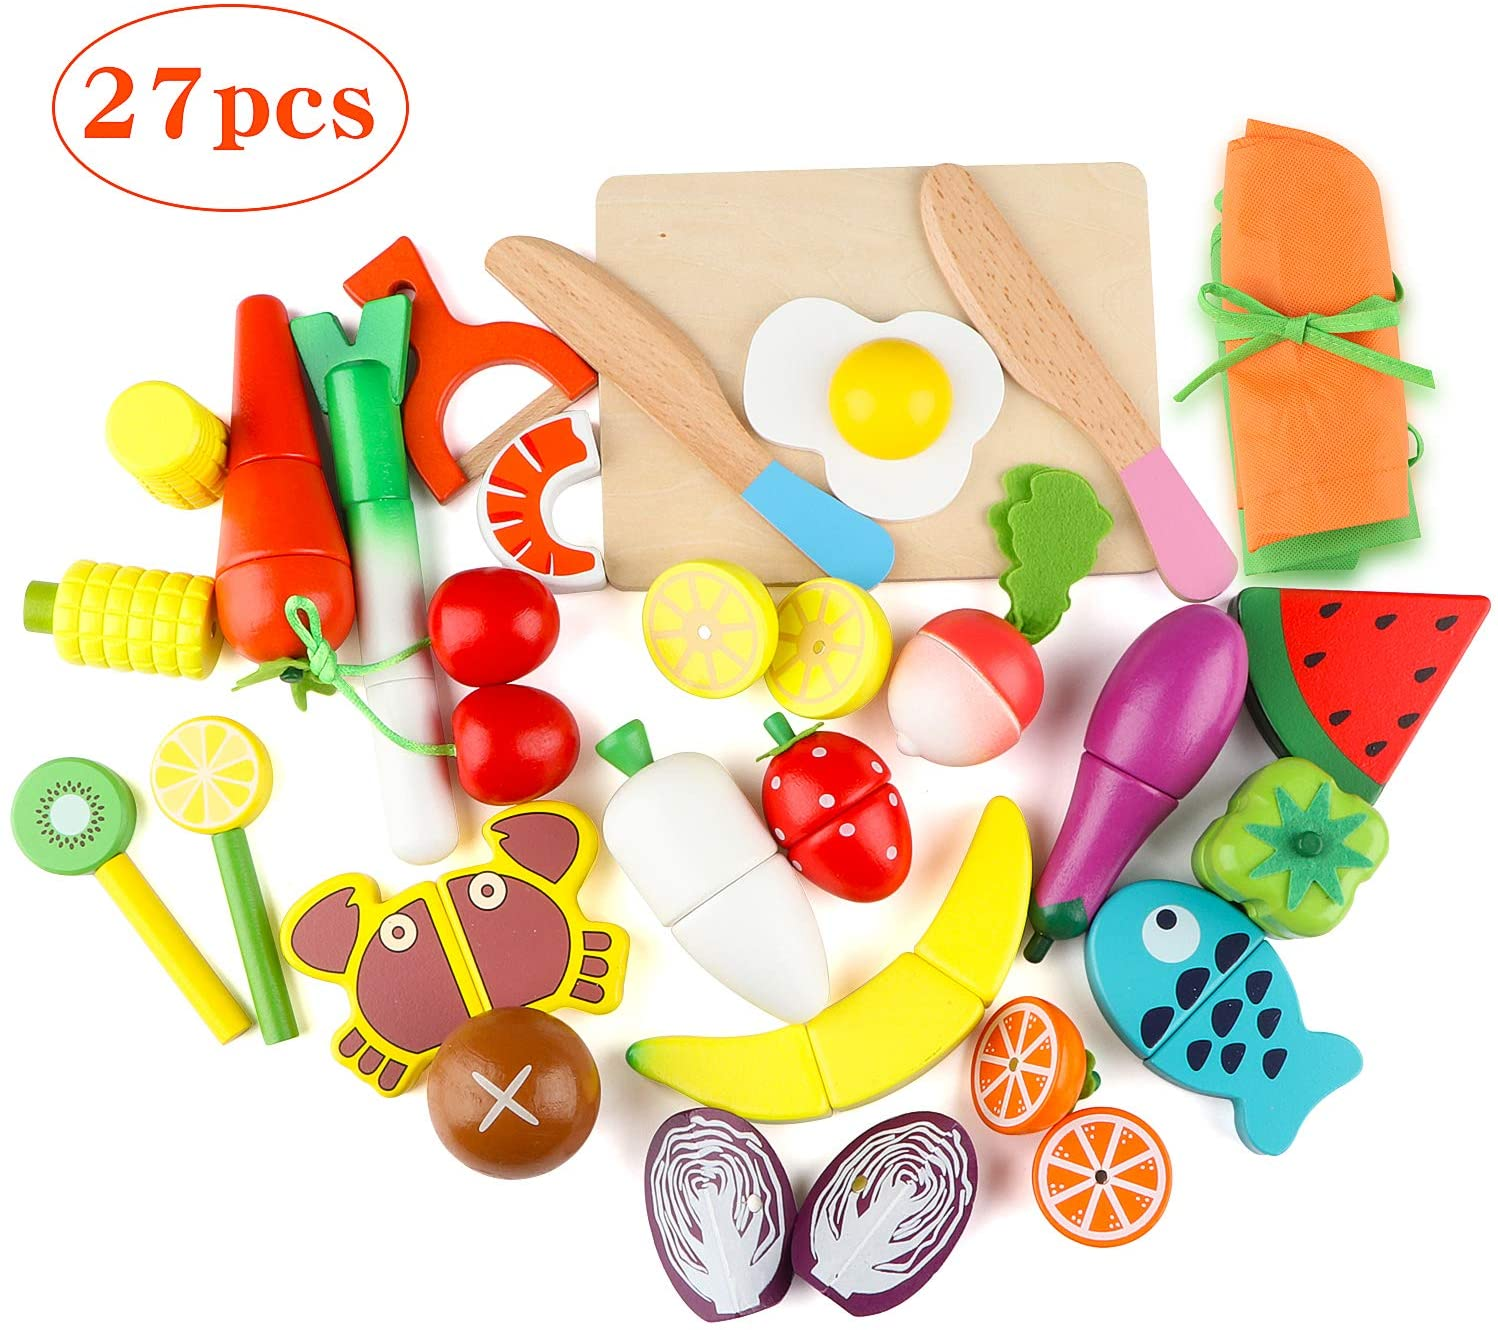 Joqutoys 27 PCS Wooden Cutting Fruit Vegetables Set for Kids, Pretend Play Food Toy Set with Wooden Knife and Tray, Magnetic Play Kitchen Kits Educational Game for Boys Girls Gifts